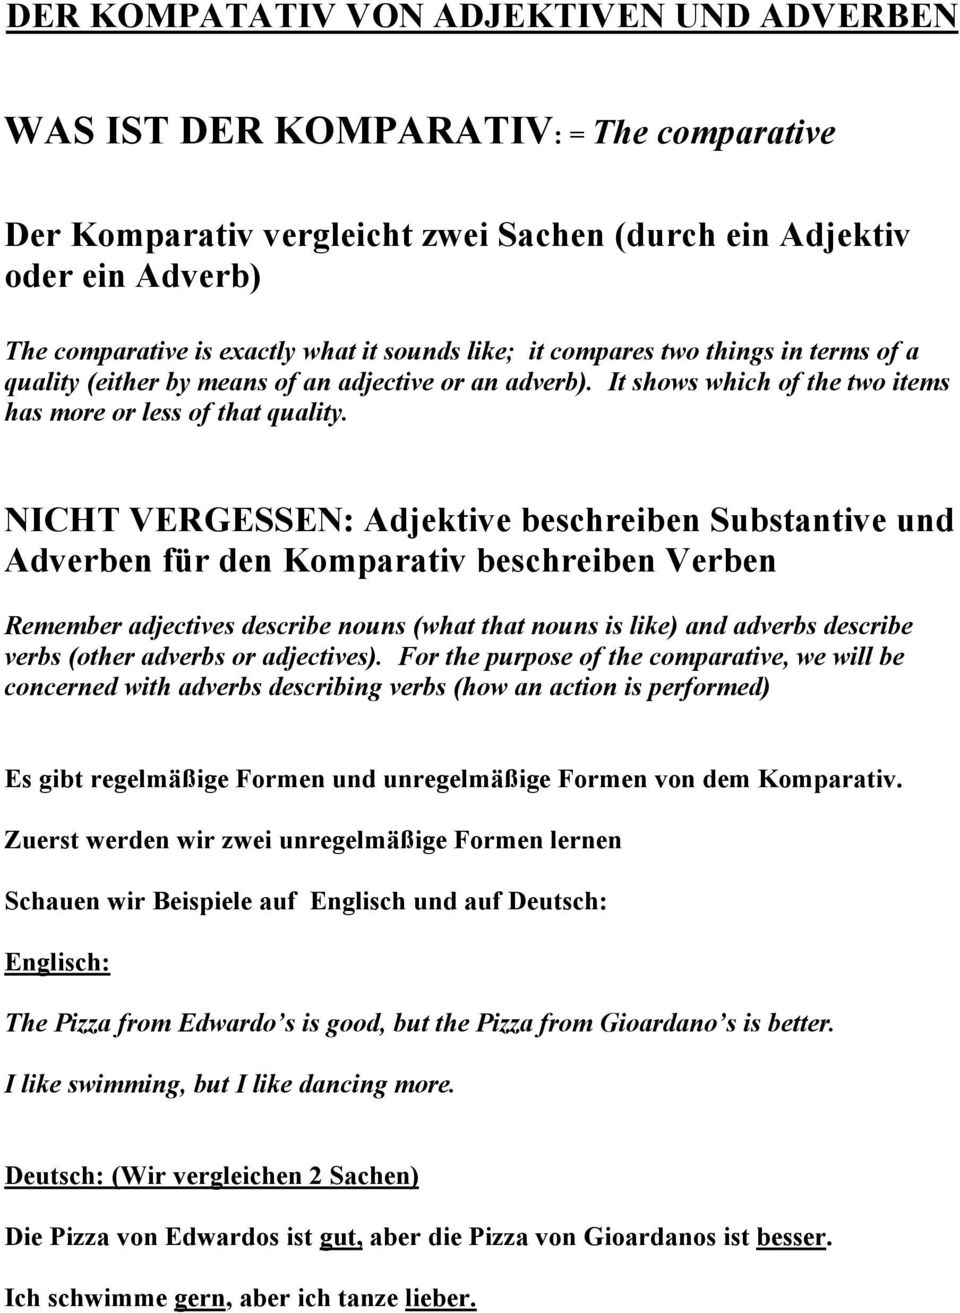 NICHT VERGESSEN: Adjektive beschreiben Substantive und Adverben für den Komparativ beschreiben Verben Remember adjectives describe nouns (what that nouns is like) and adverbs describe verbs (other